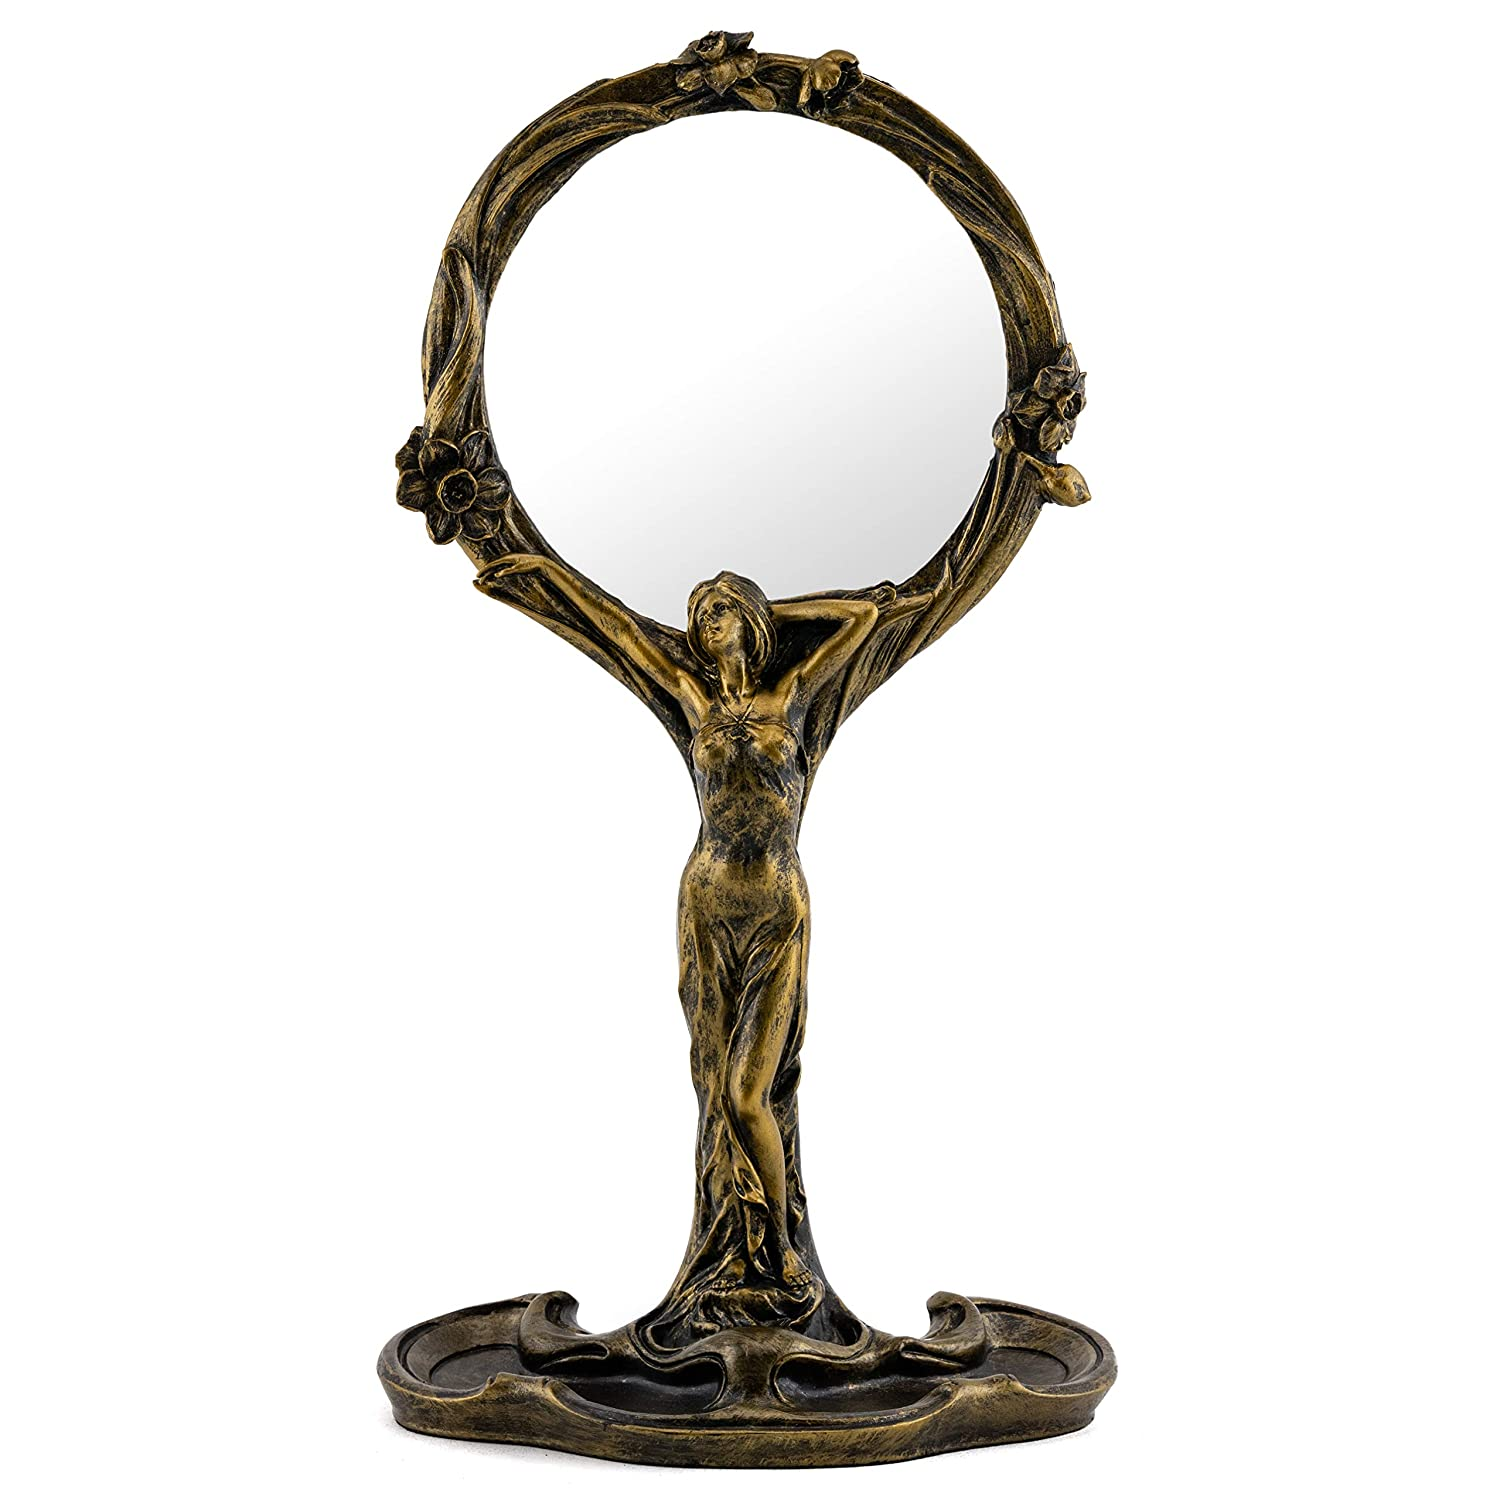 Top Collection Art Nouveau Standing Lady Hand Mirror- Hand Painted Collectible New Art Deco Reflecting Mirror with Bronze Finish Look- 11-Inch Beautiful Makeup Accessory